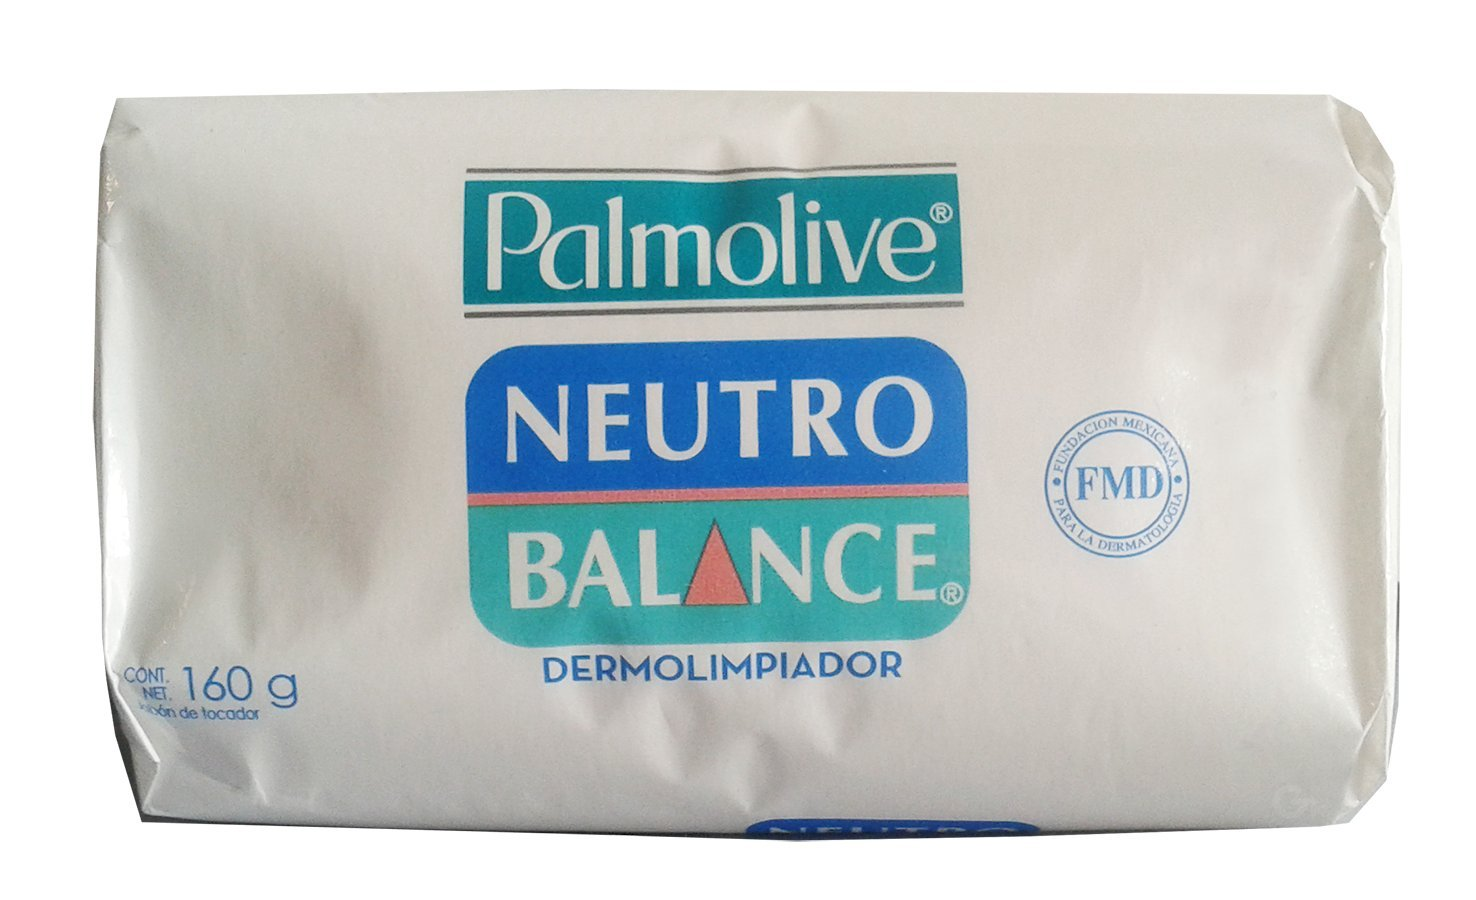 Amazon.com: Palmolive Neutro Balance Soap 6.34 oz - Jabon Balance Natural (Pack of 6): Beauty